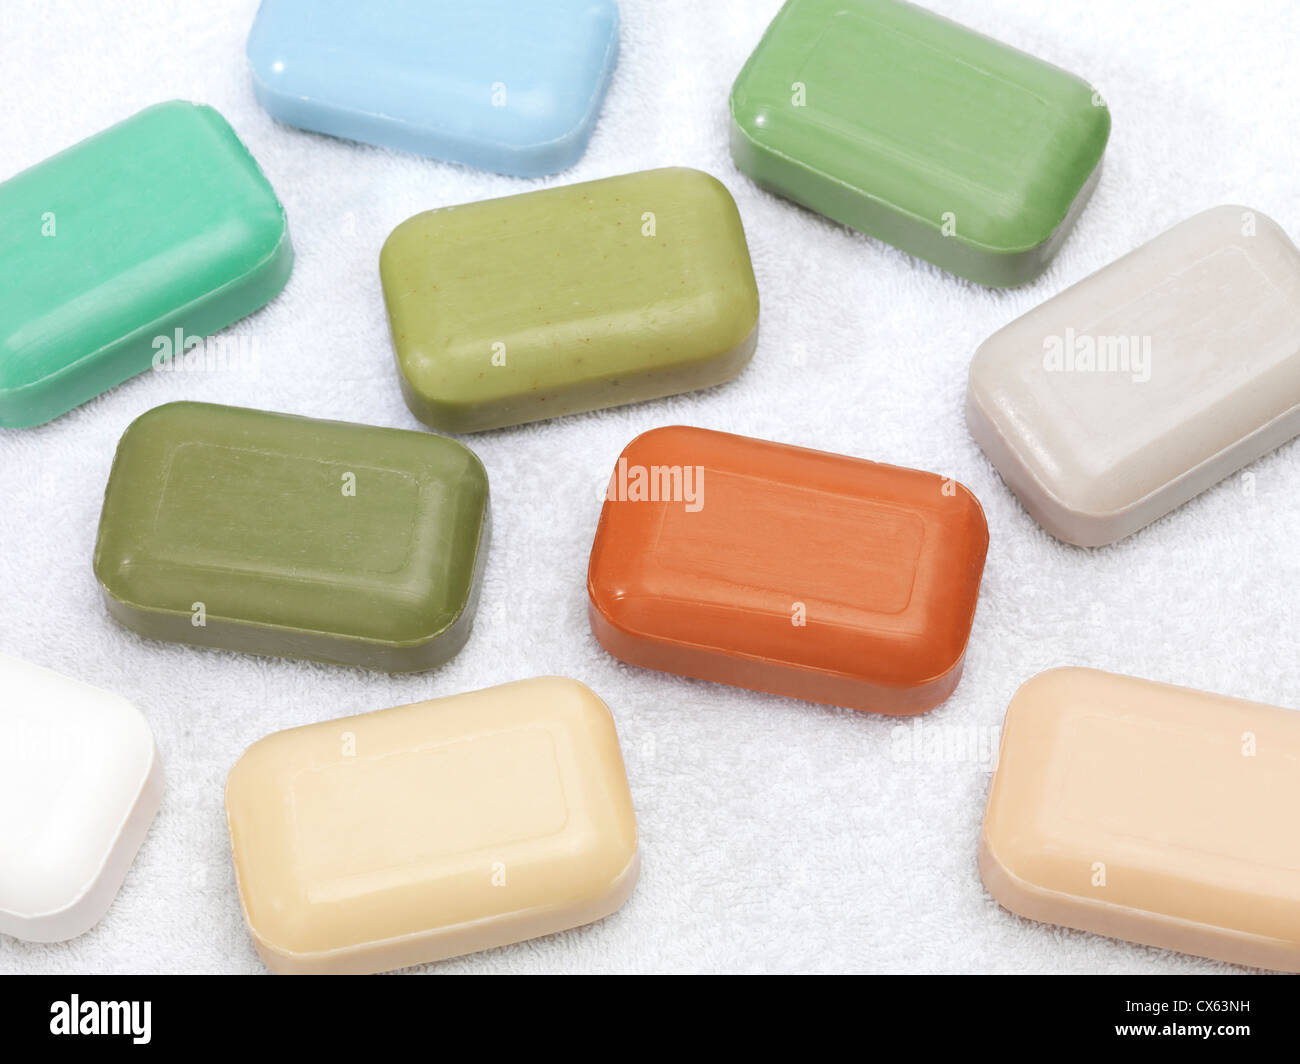 Different color soap bars with healthy natural ingredients - Stock Image